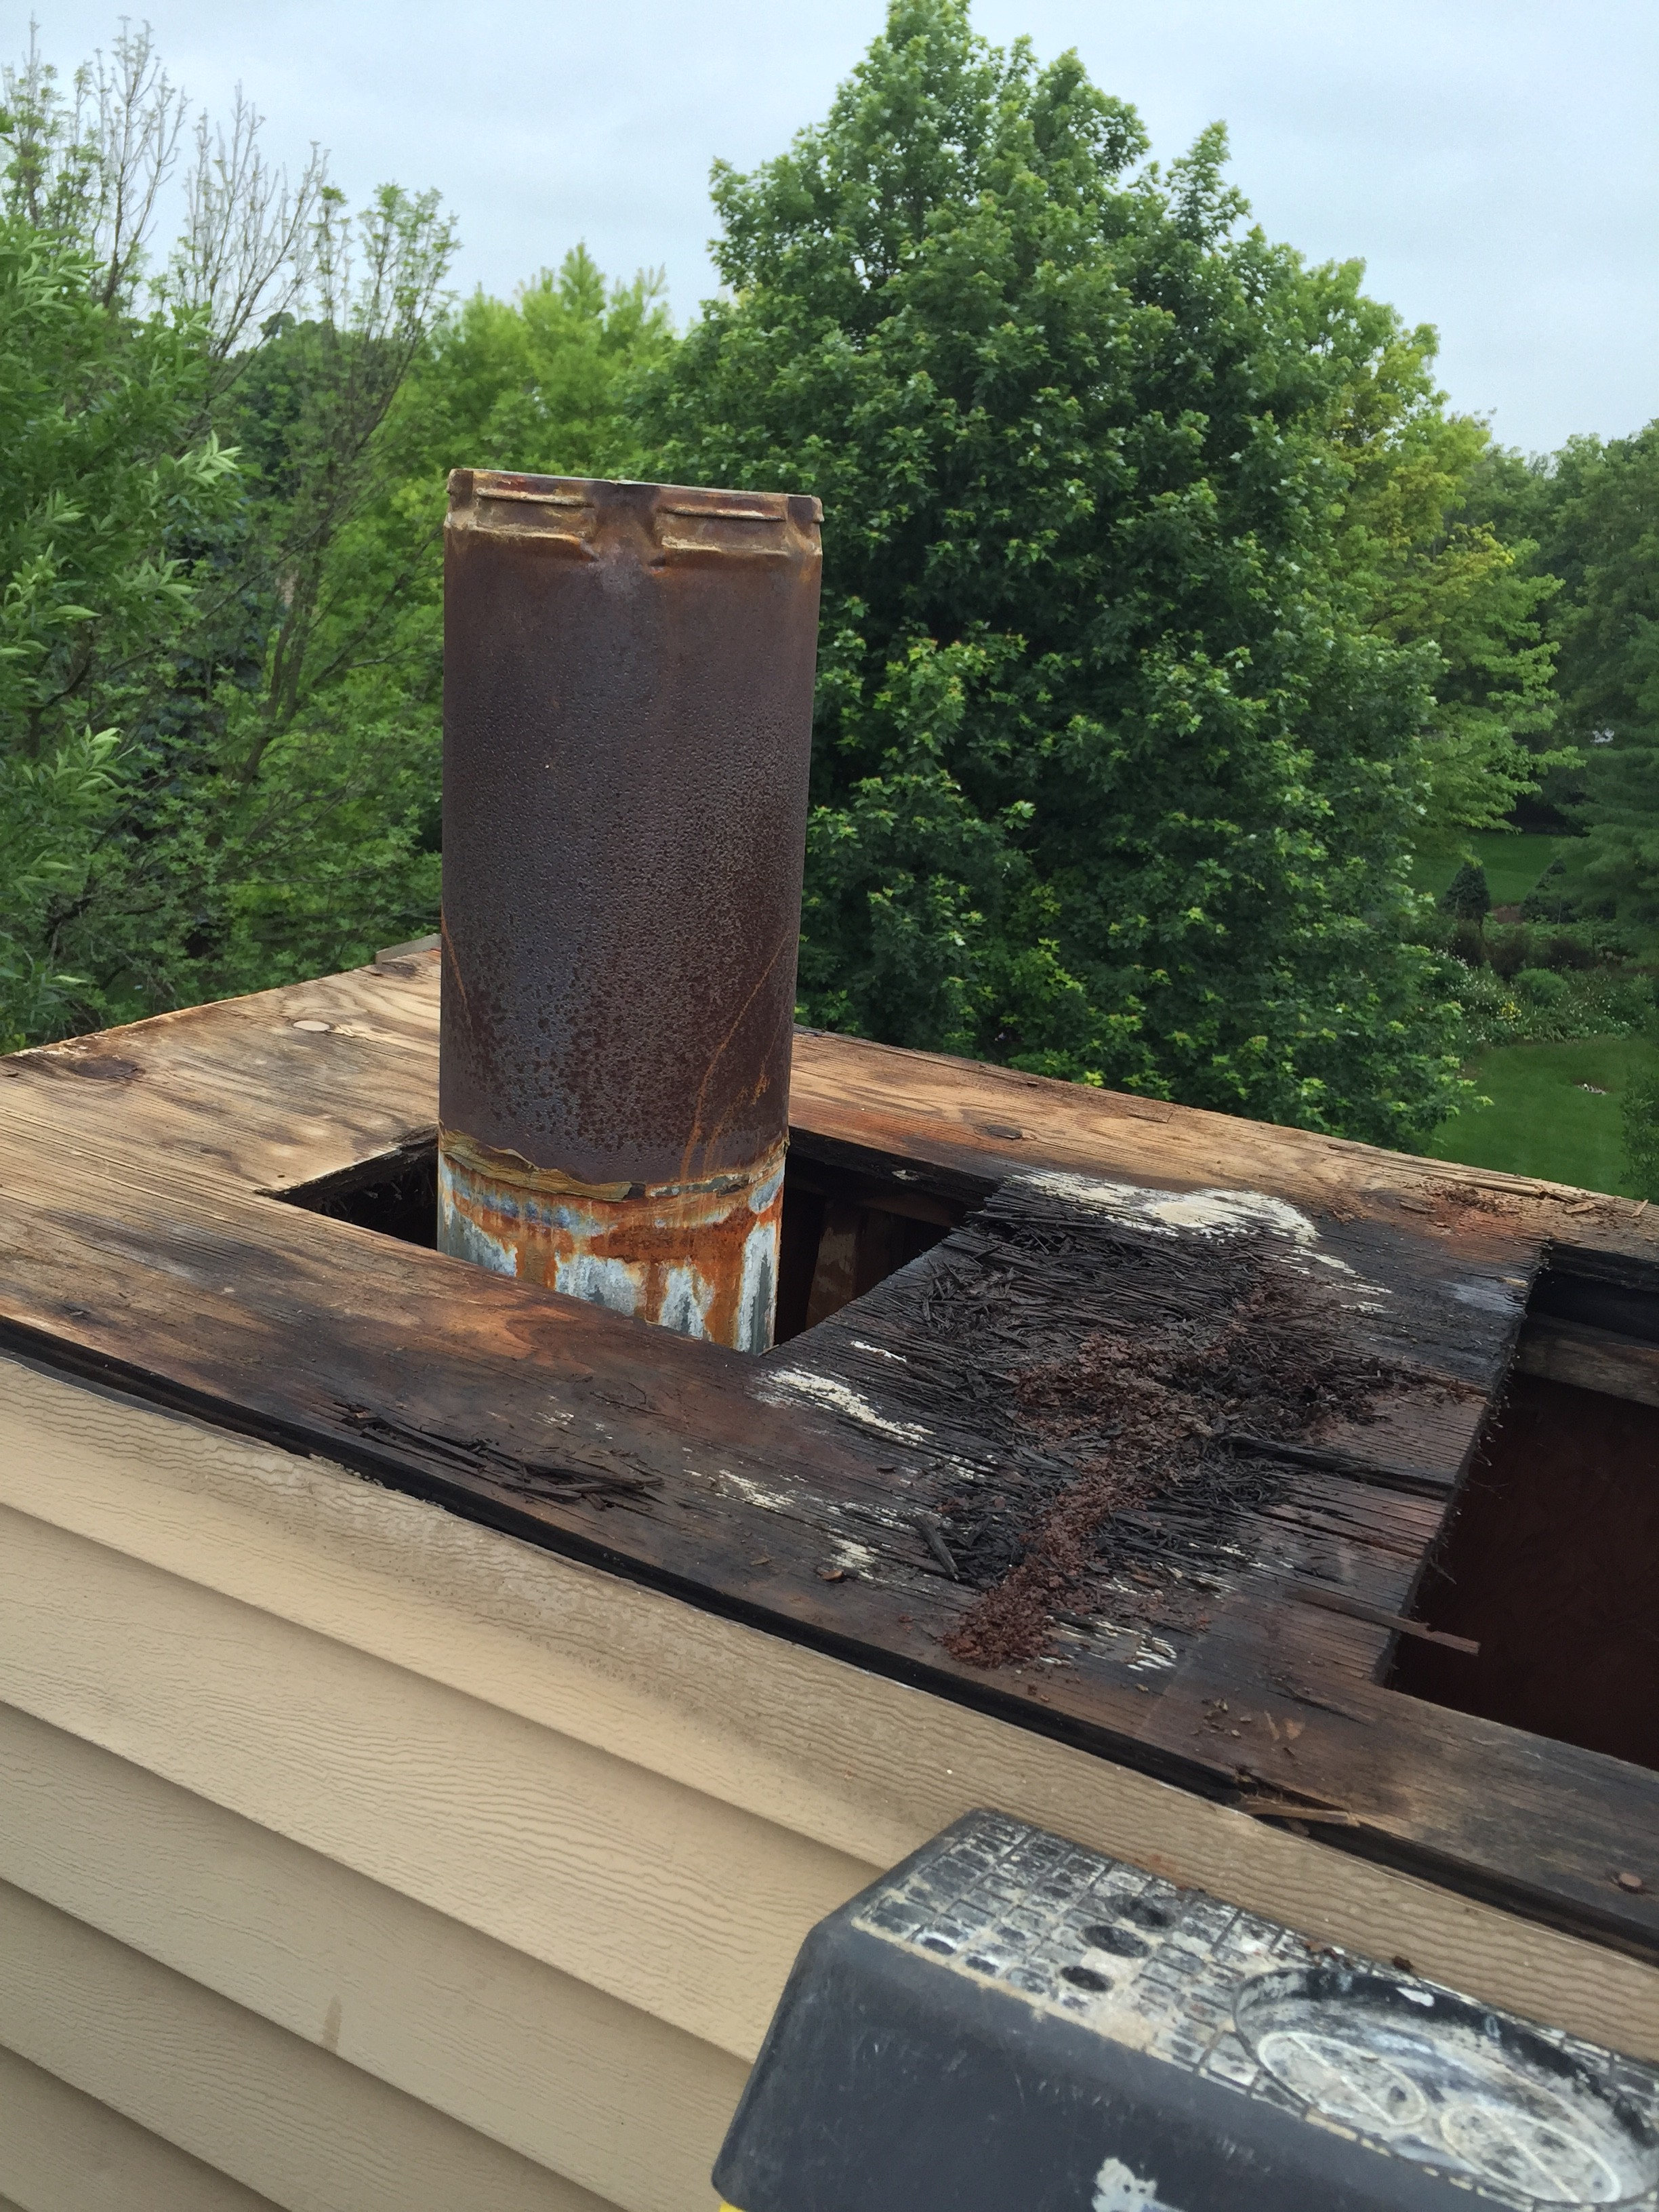 1 The Simplest Cause Of Chimney Leaking Rain Going Straight In From Top